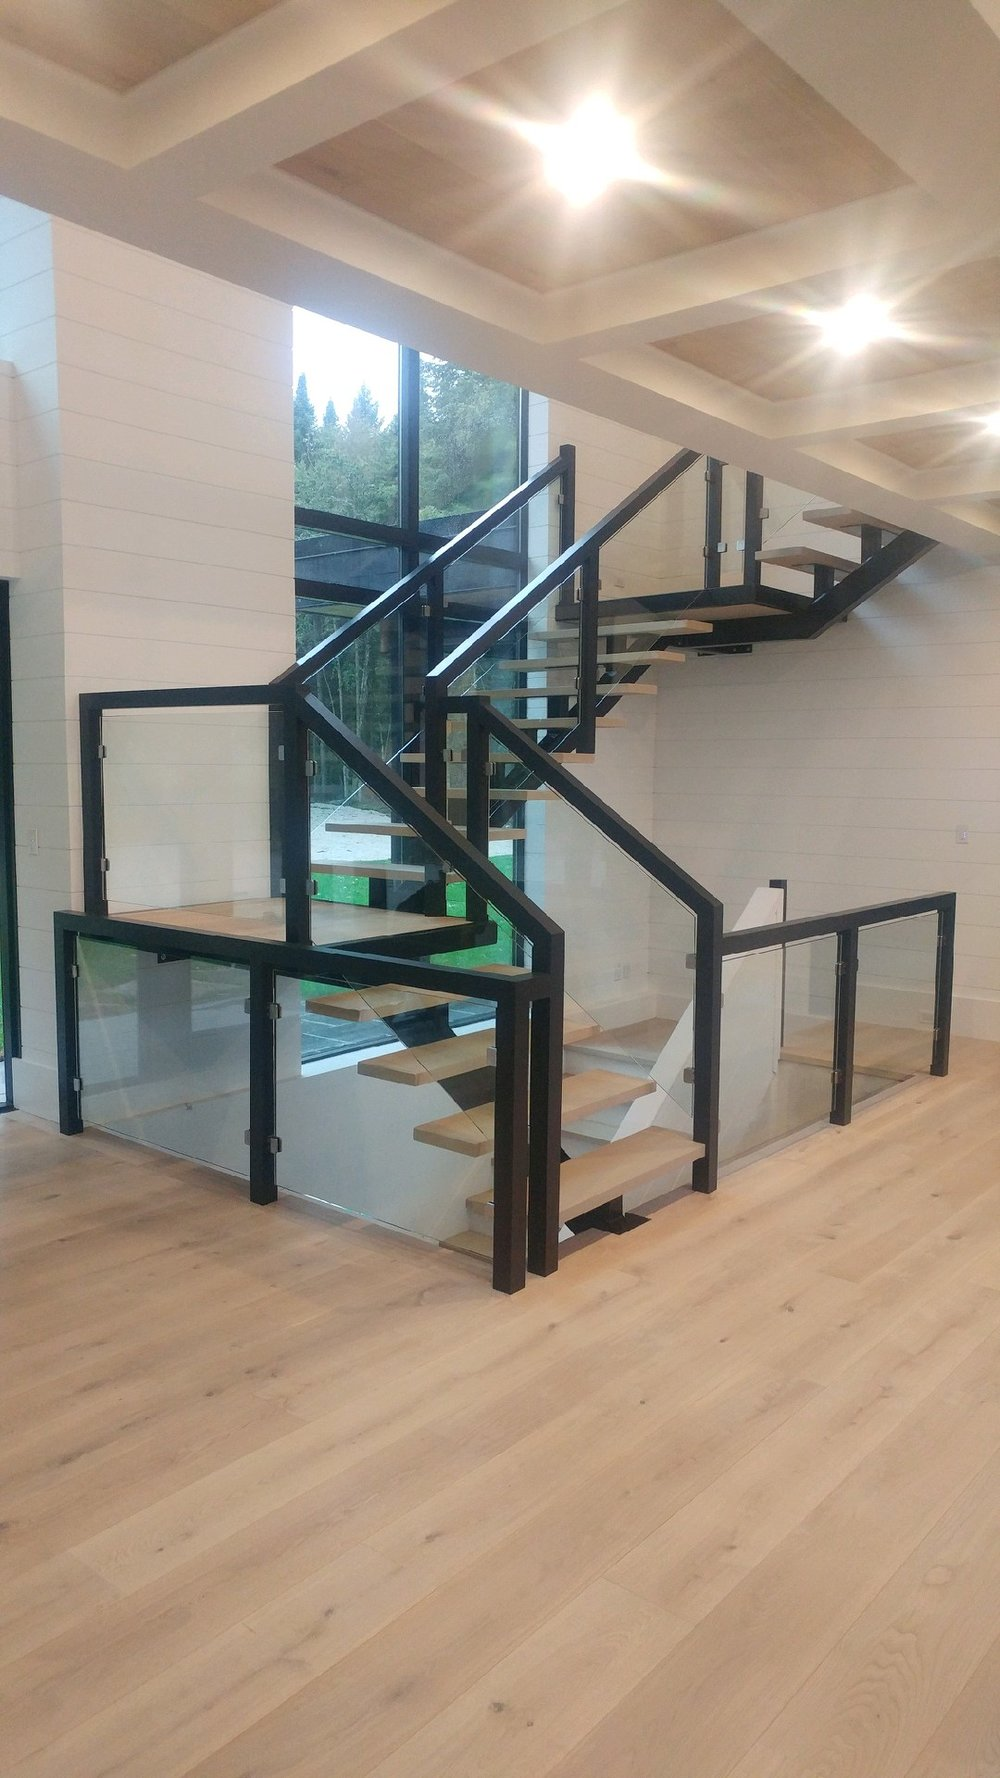 """2-3/4"""" x 2-3/4"""" paint grade infinity post/railing system with 10mm clear tempered glass.  Job location: Innisfil, ON."""